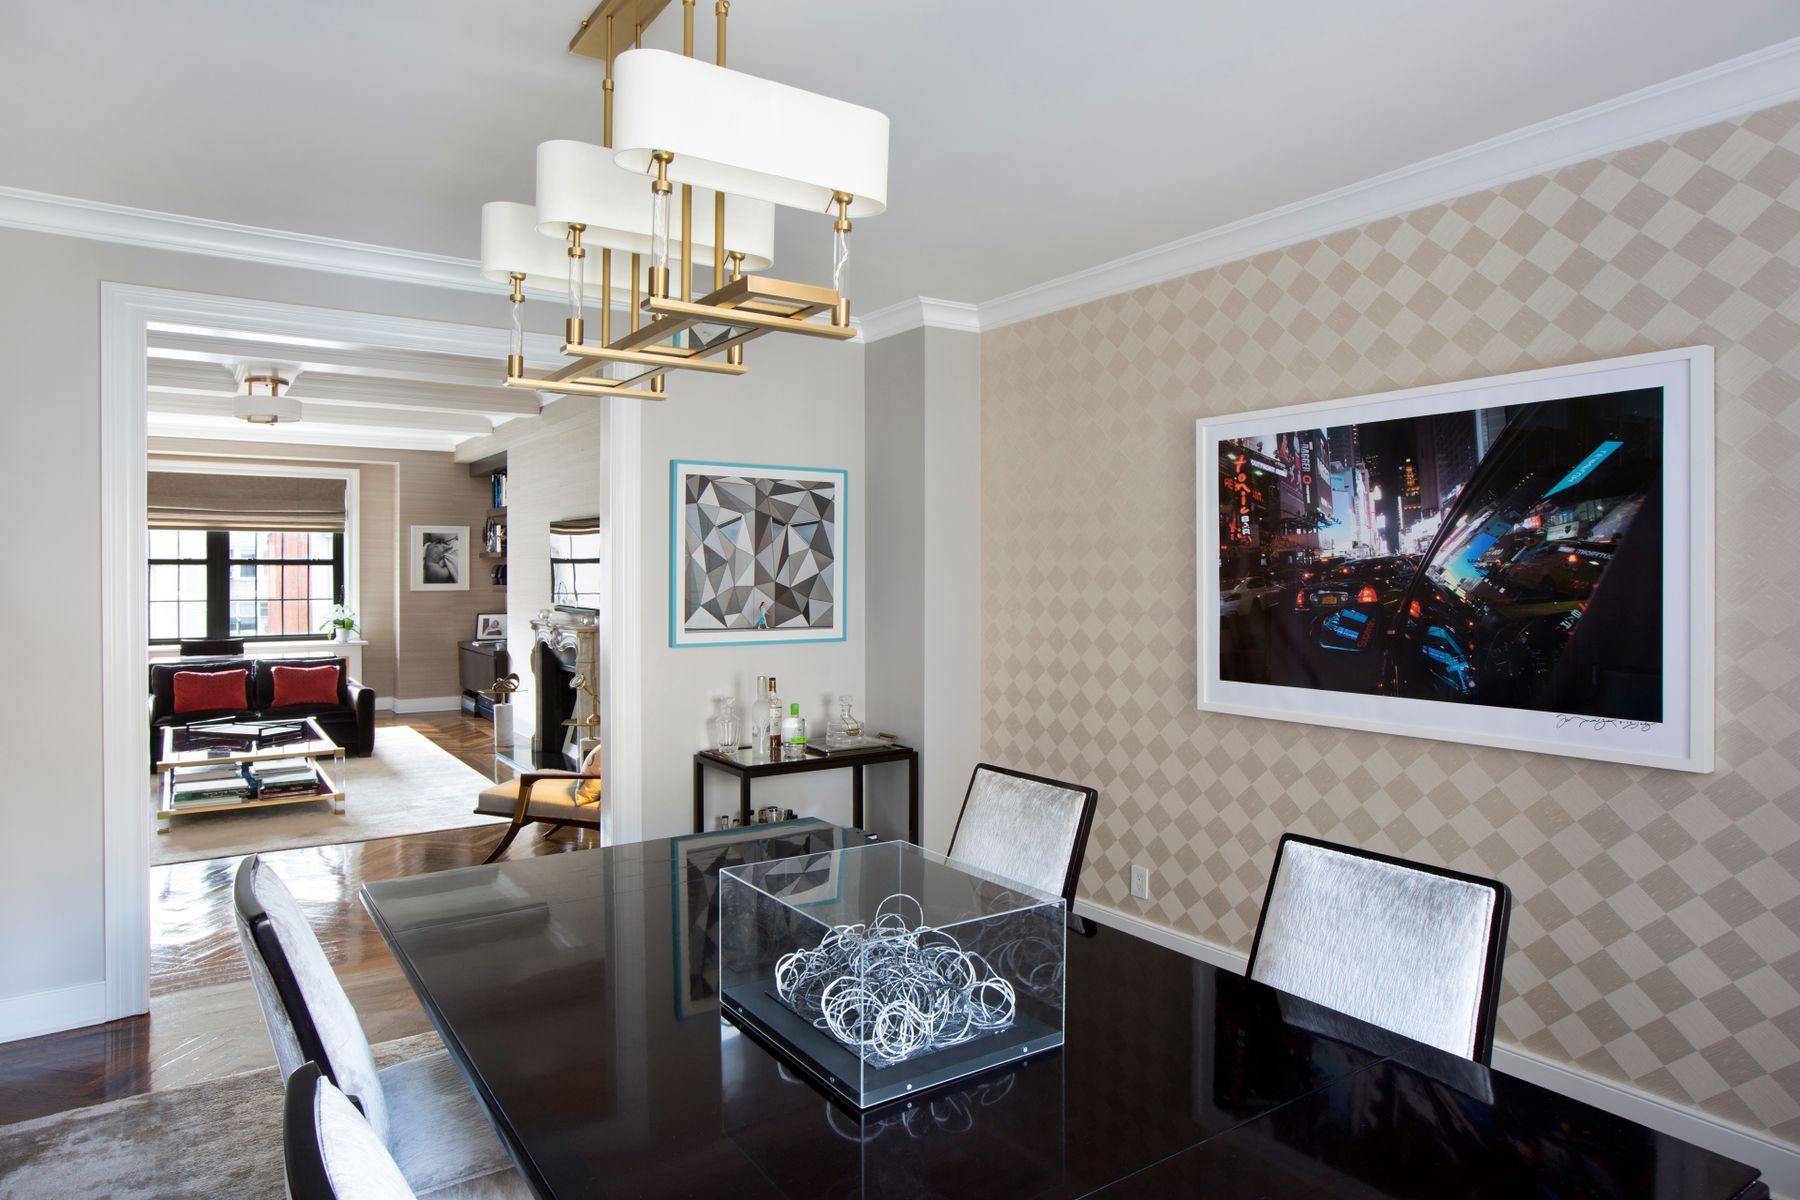 Martine Capdevielle_Luxury Real Estate NYC_21 East 66th St Apt 5w 3.jpg